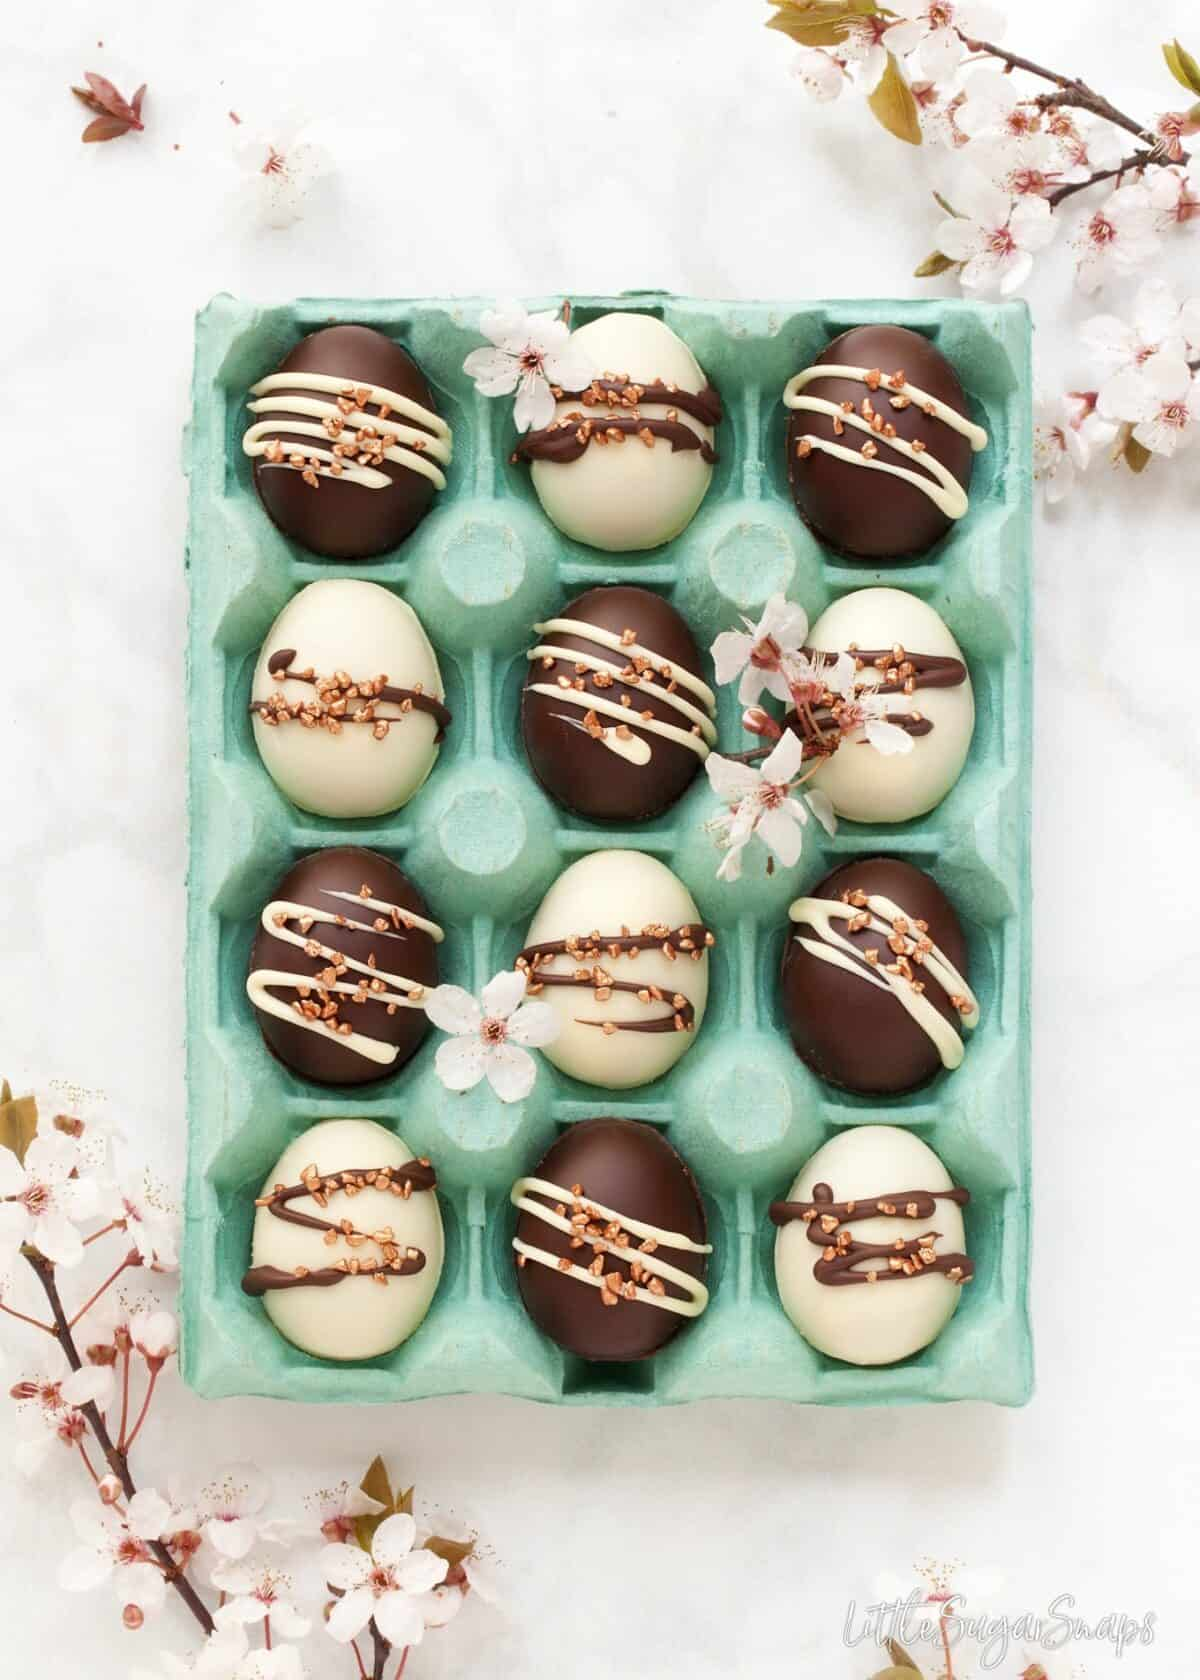 A box of chocolate easter eggs using a caramel shortbread recipe. Mix of white and dark chocolate eggs. decorated with contrasting chocolate stripes and bronze sprinkles